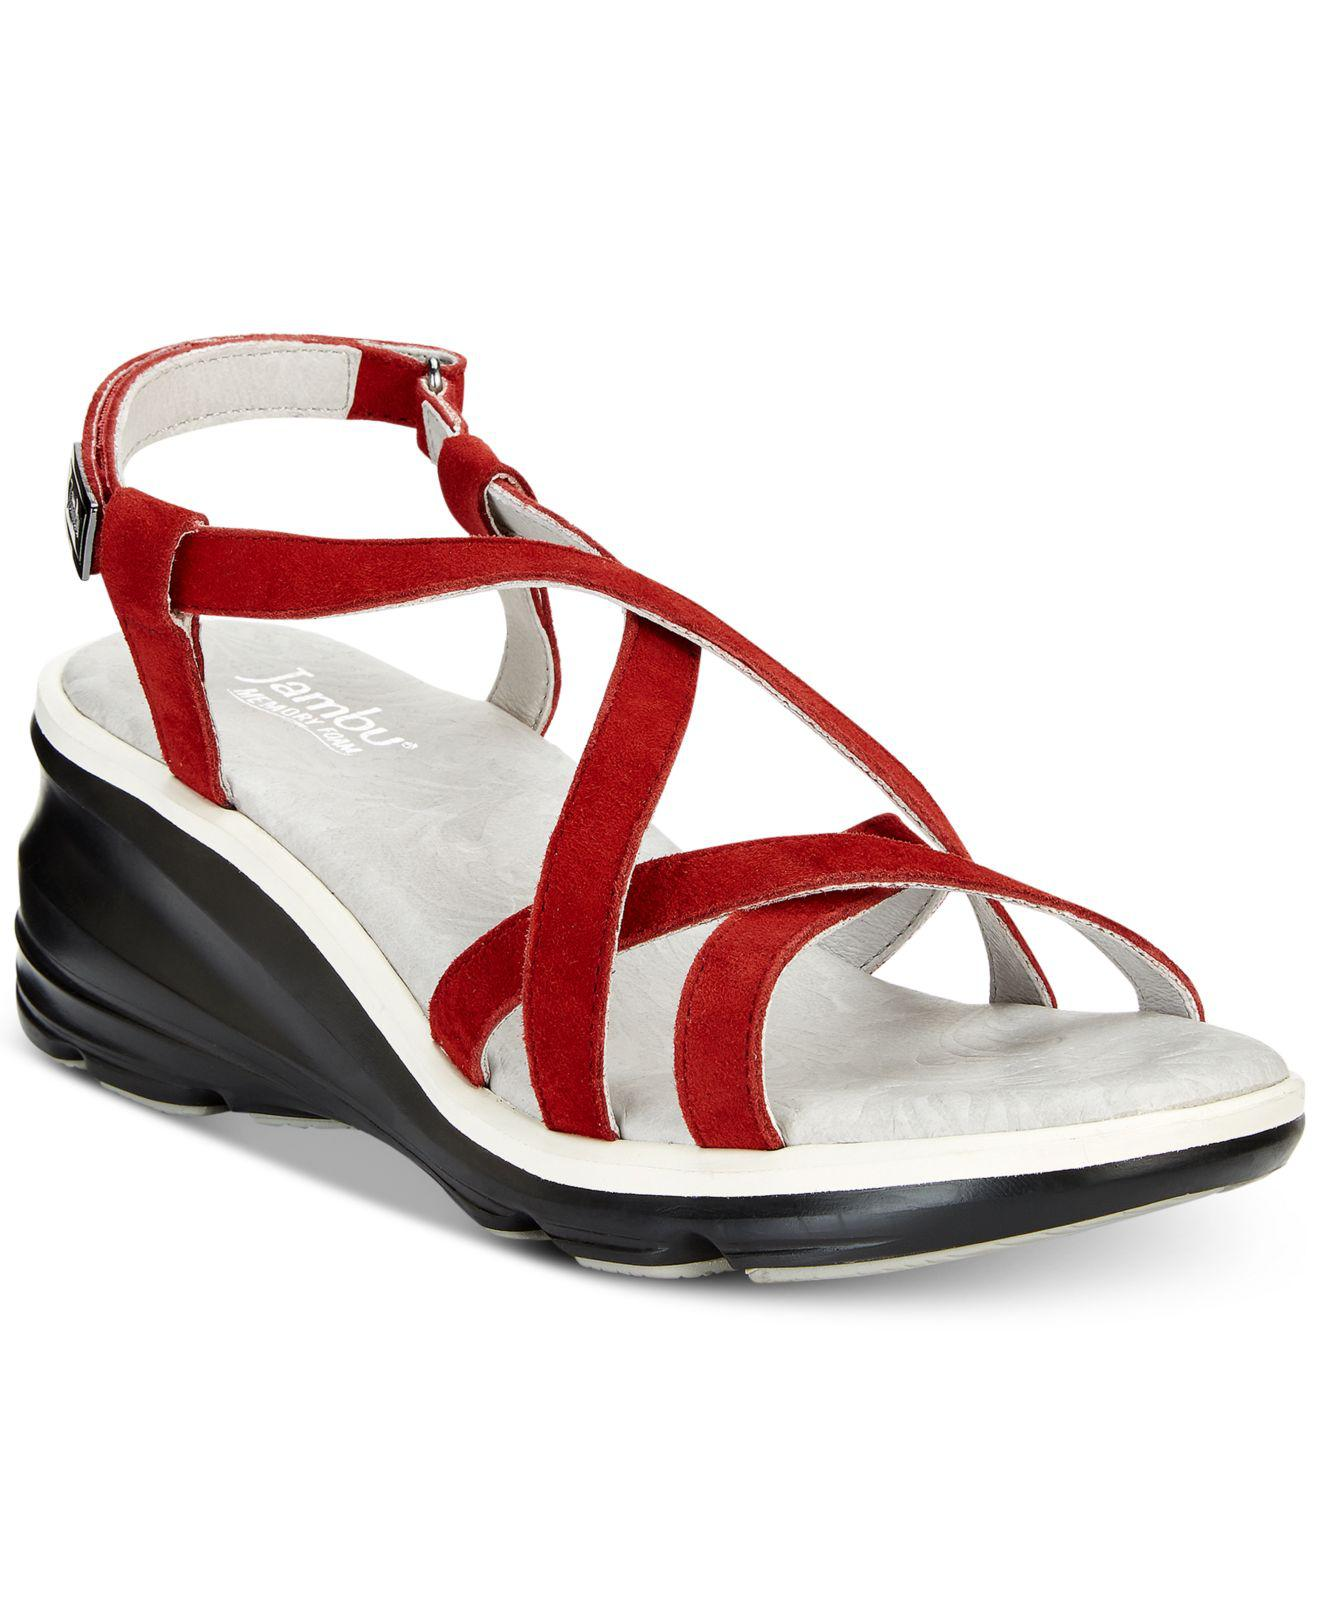 9e43a72af0d Lyst - Jambu Ginger Strappy Wedge Sandals in Red